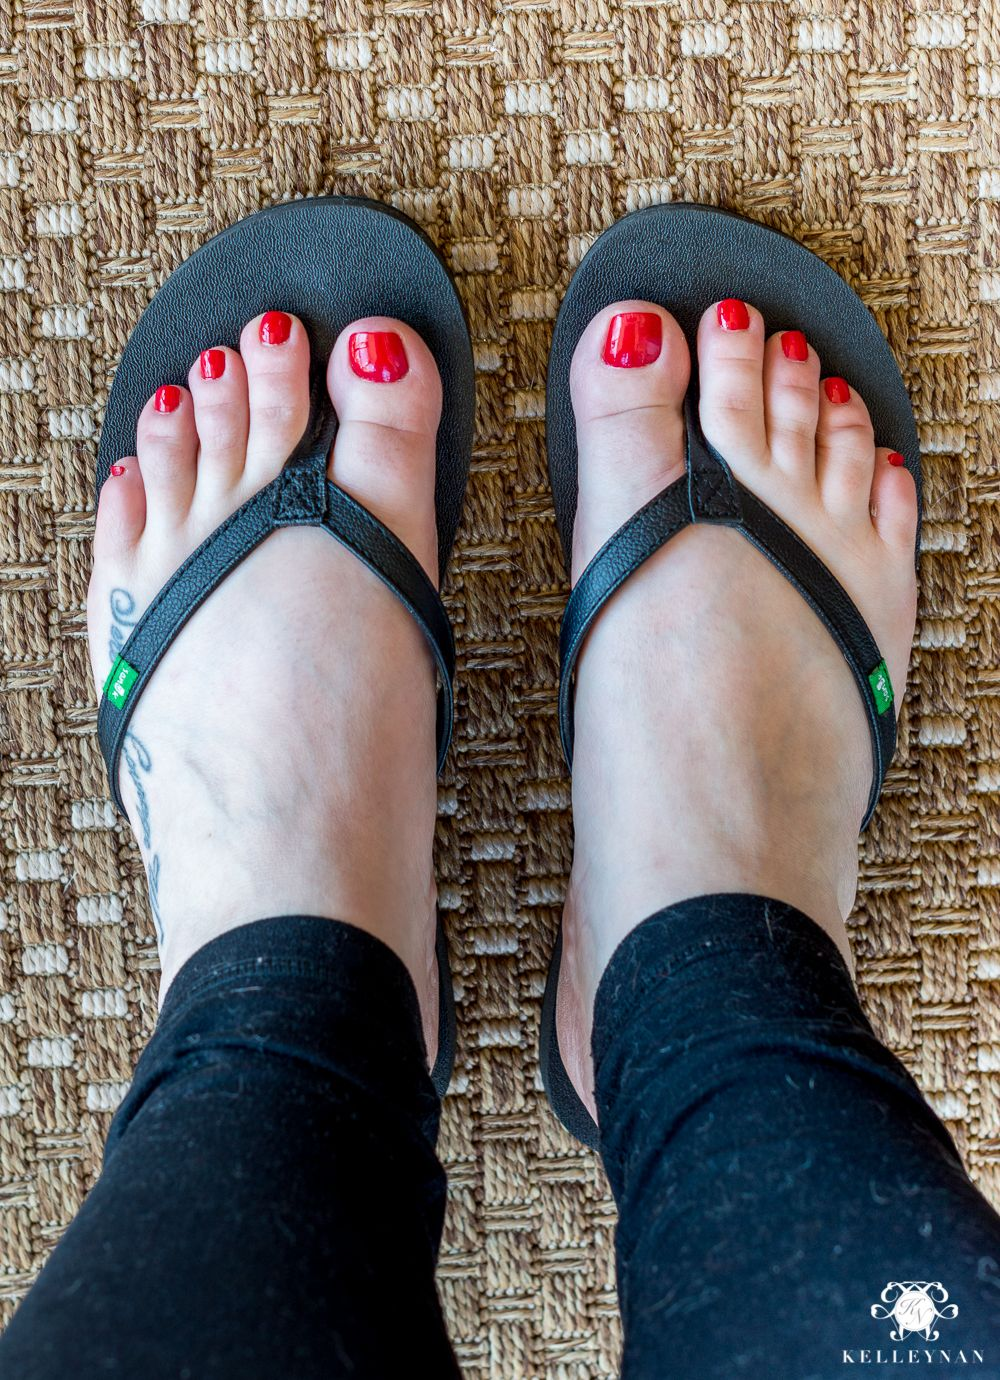 f45be6b73c1e Sanuk Yoga Joy Flip Flop Review in Comfort and Support